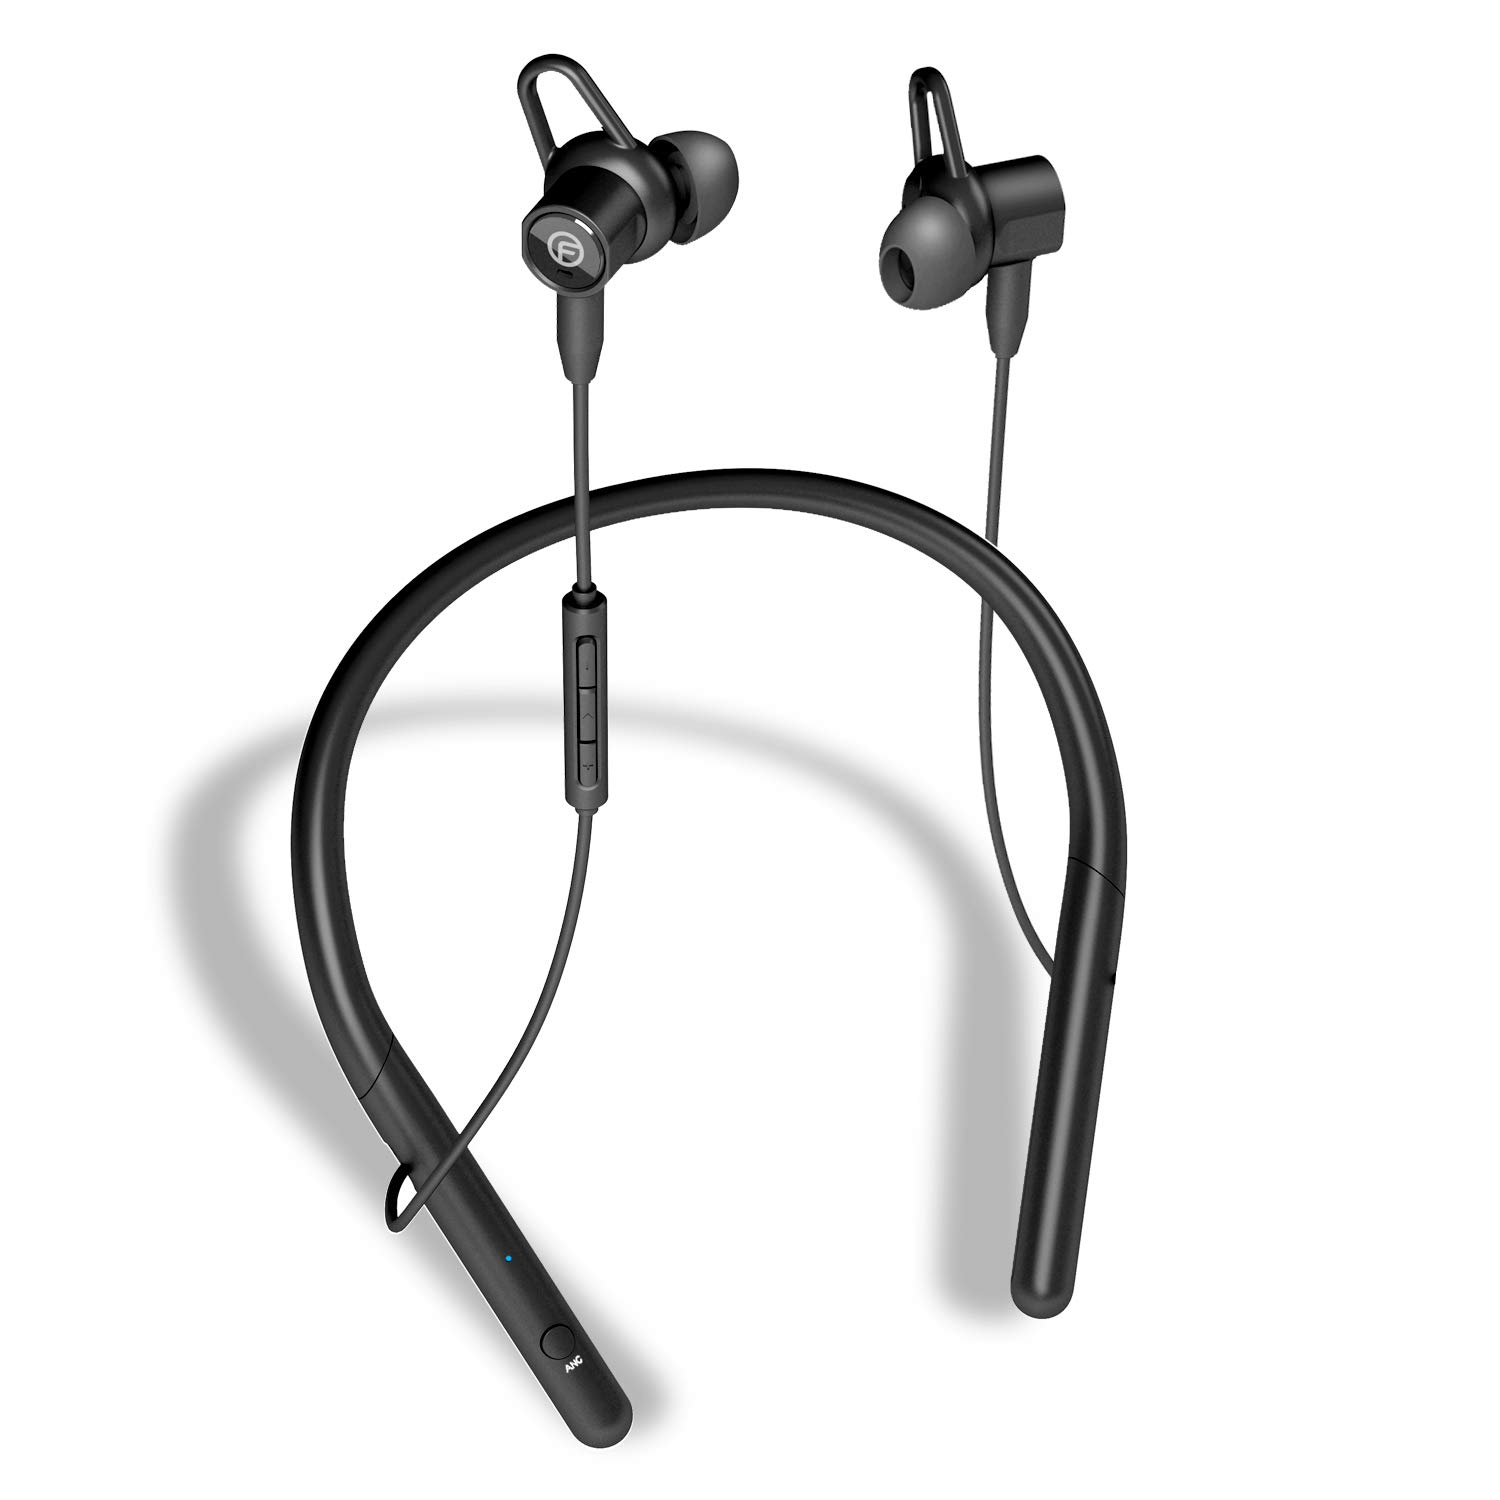 FUSOW Active Noise Cancelling Bluetooth Headphones, wireless neckband headphones, HIFI stereo in-ear sports earphone with microphone,IPX7 Waterproof 18 hours play time,with Magnetic